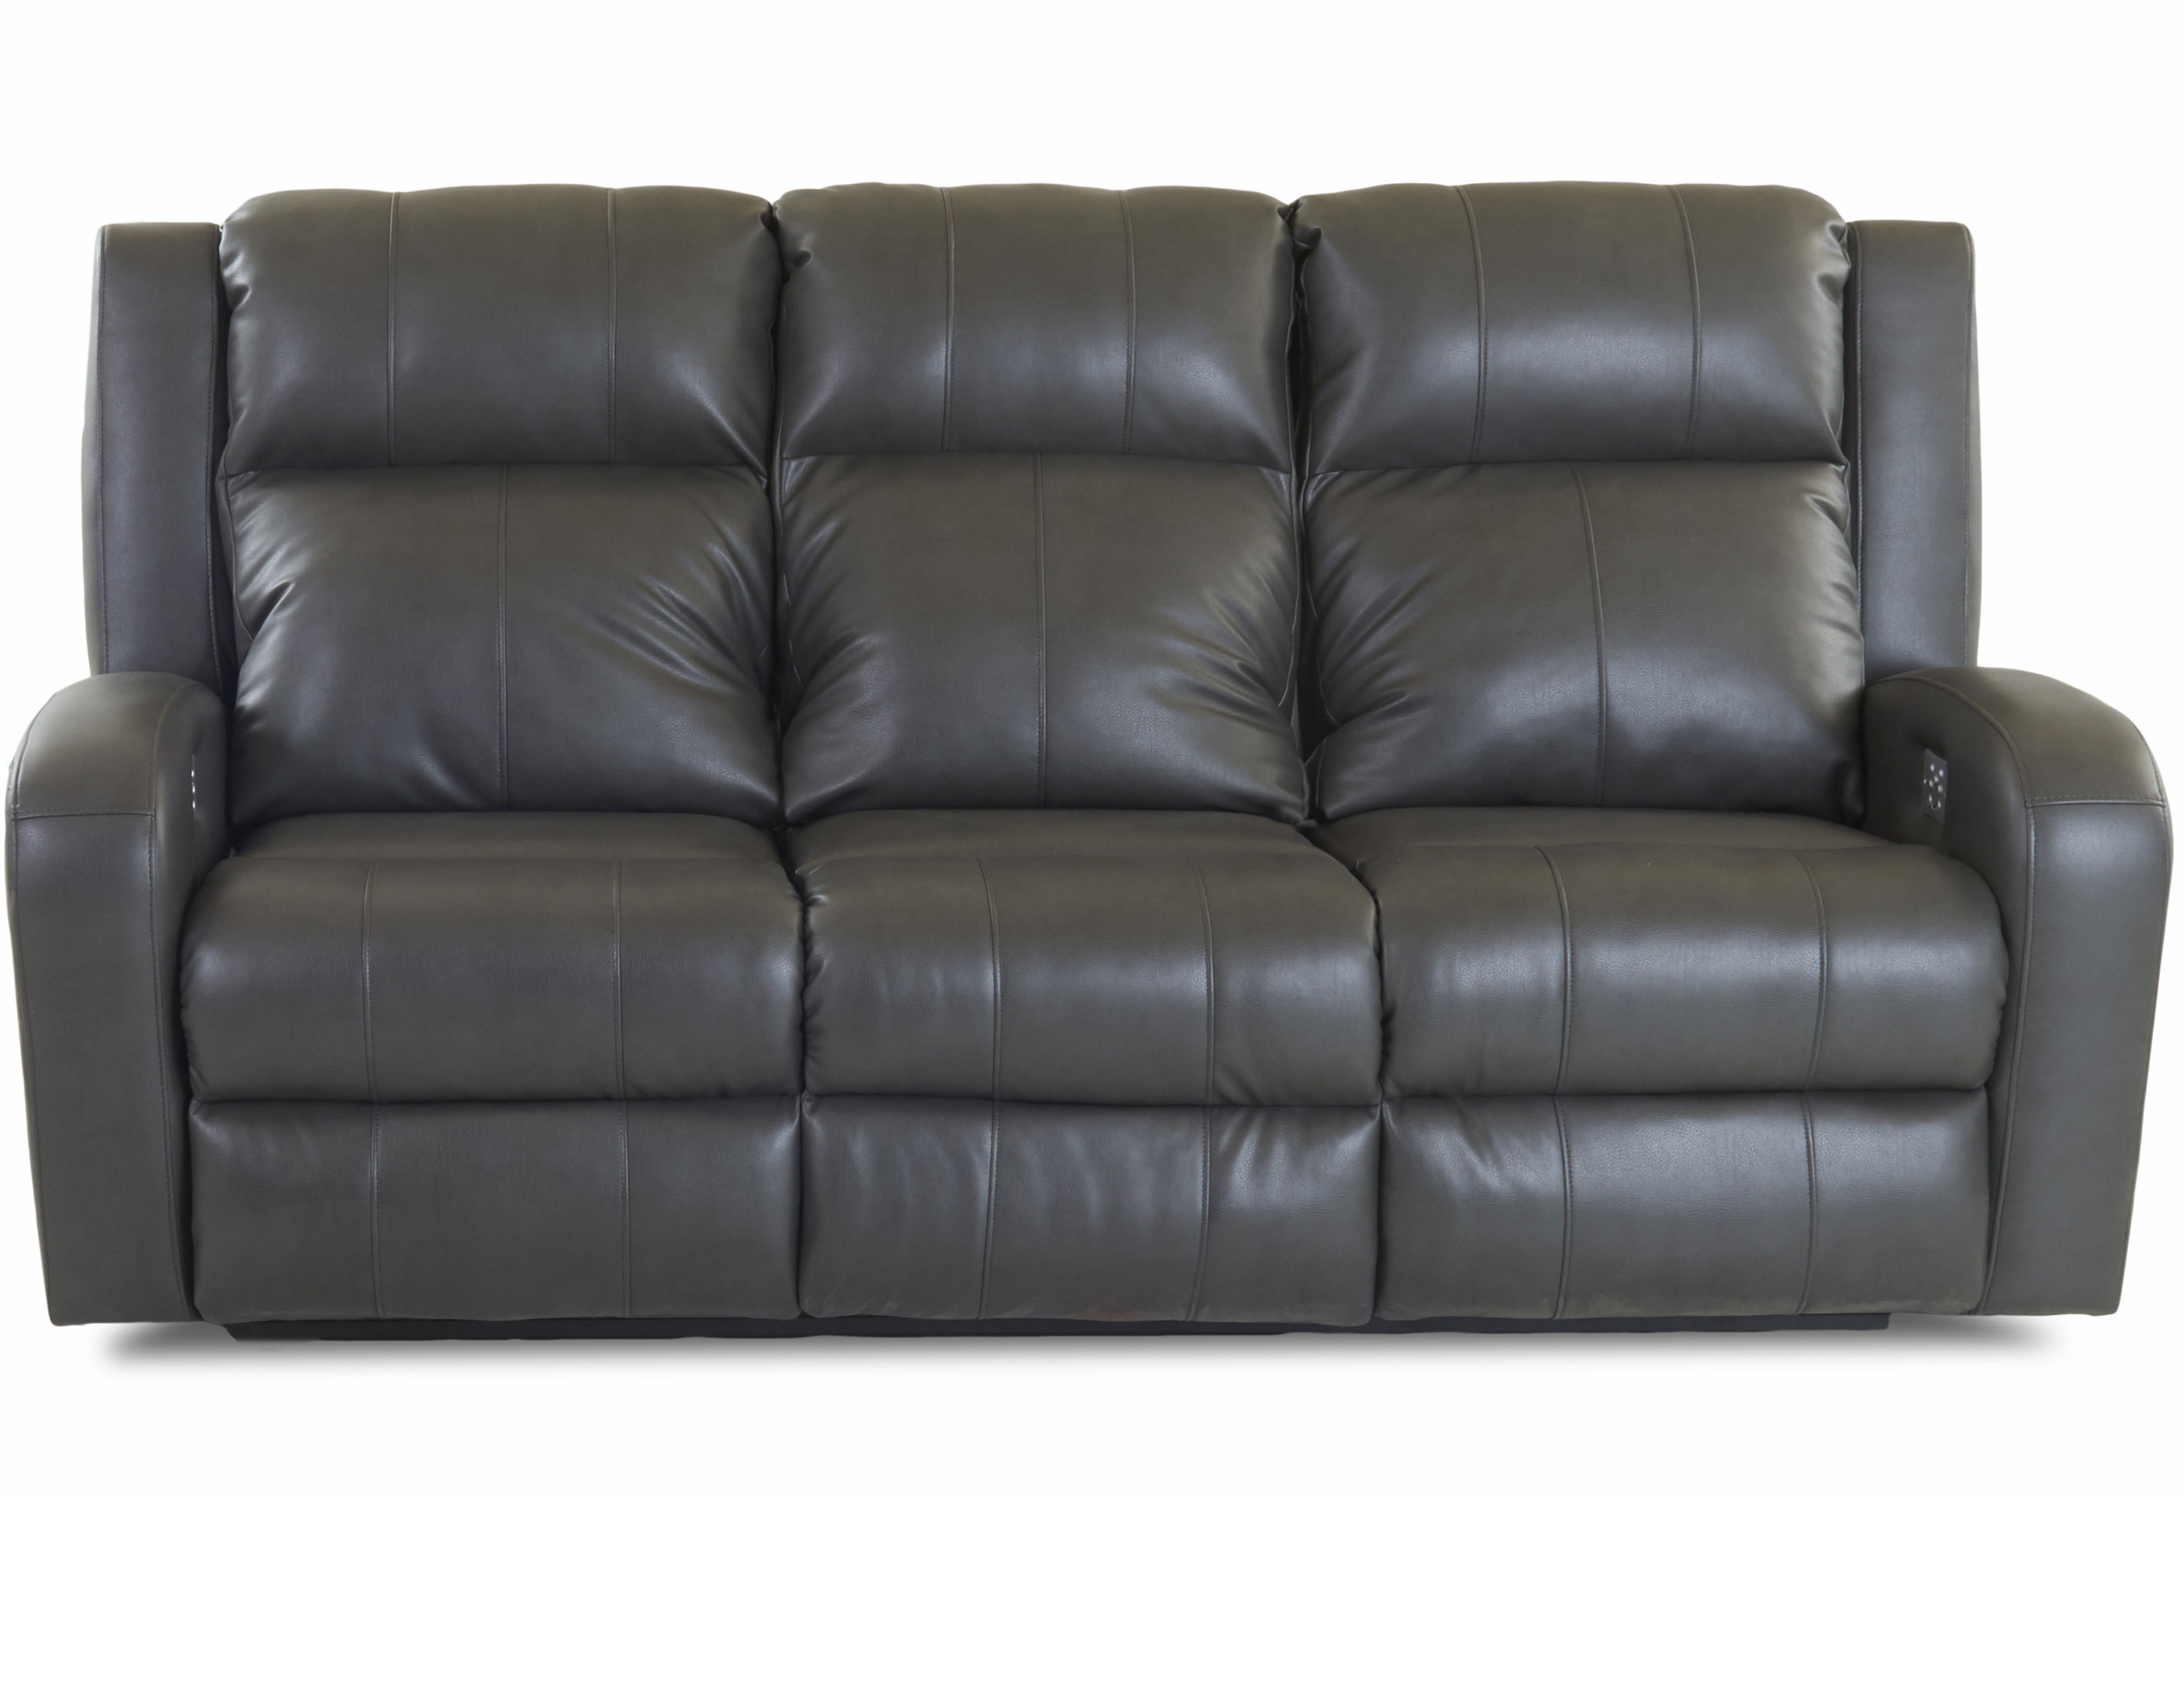 Superb Robinson 64943 Reclining Sofa Sofas And Sectionals Squirreltailoven Fun Painted Chair Ideas Images Squirreltailovenorg